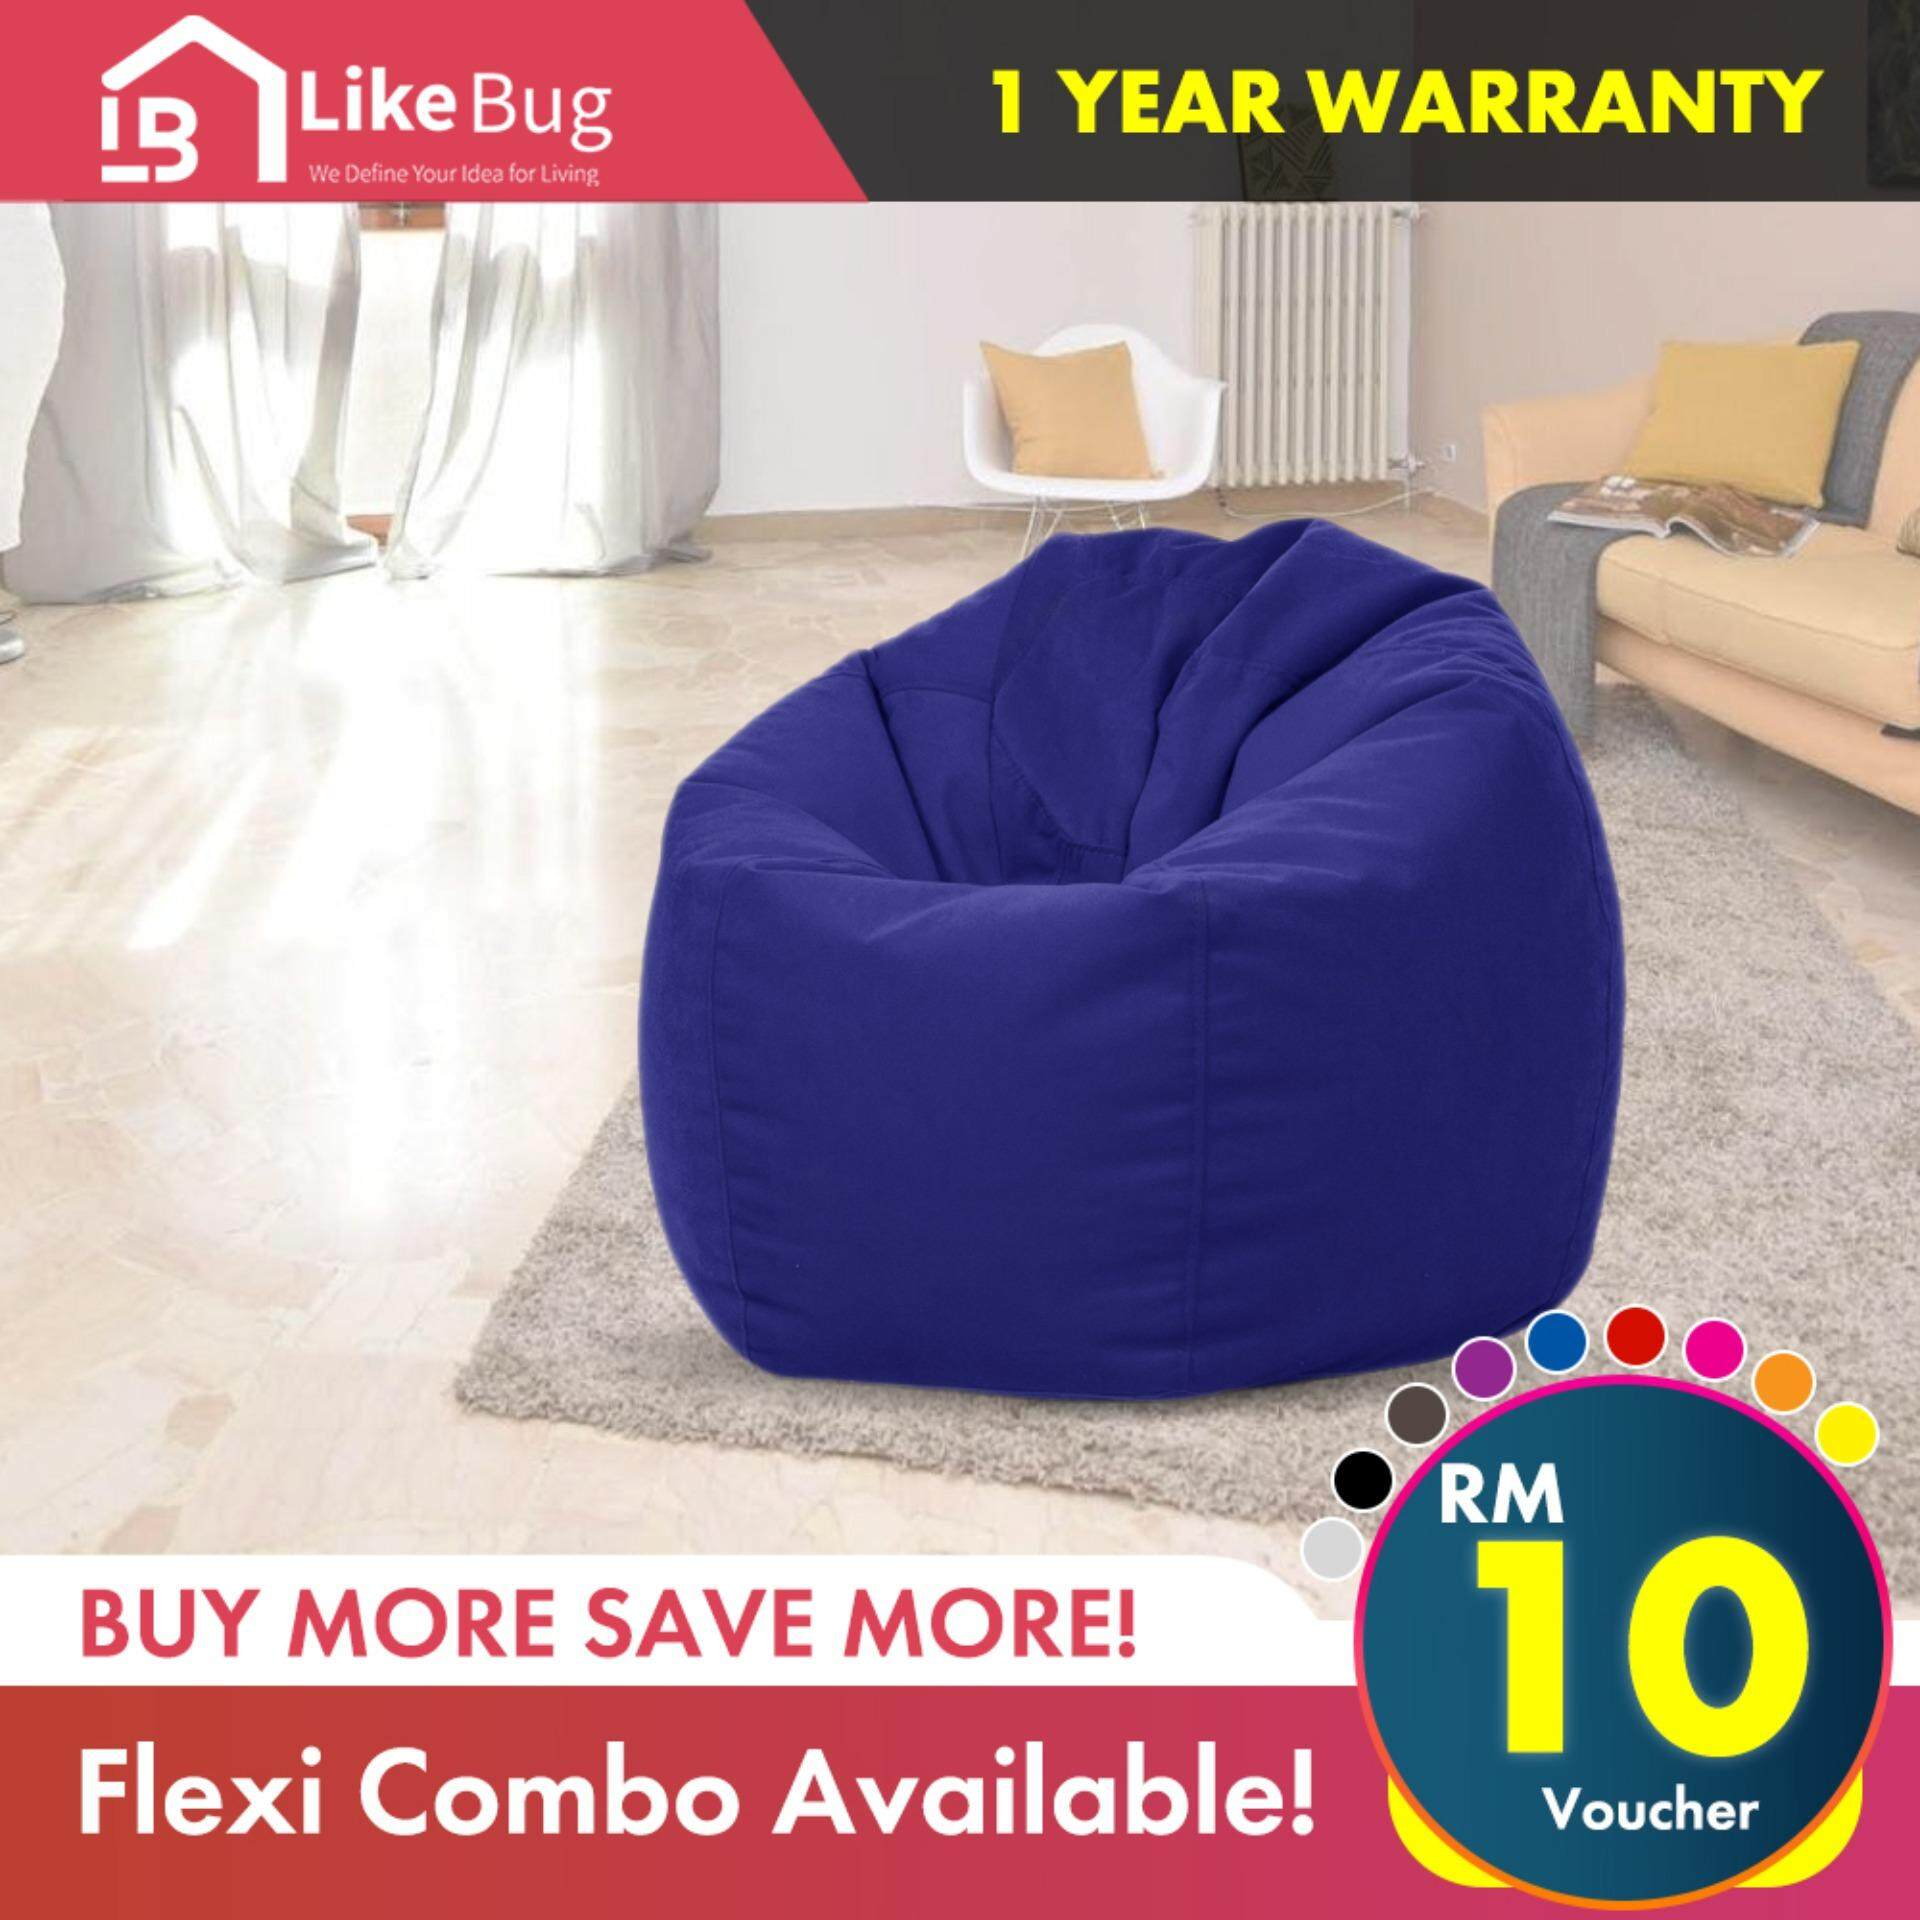 Like Bug Comfy Velvet Fabric Large Bean Bag Sofa With 2 5kg Bean Filling Xl Size Ready Stock